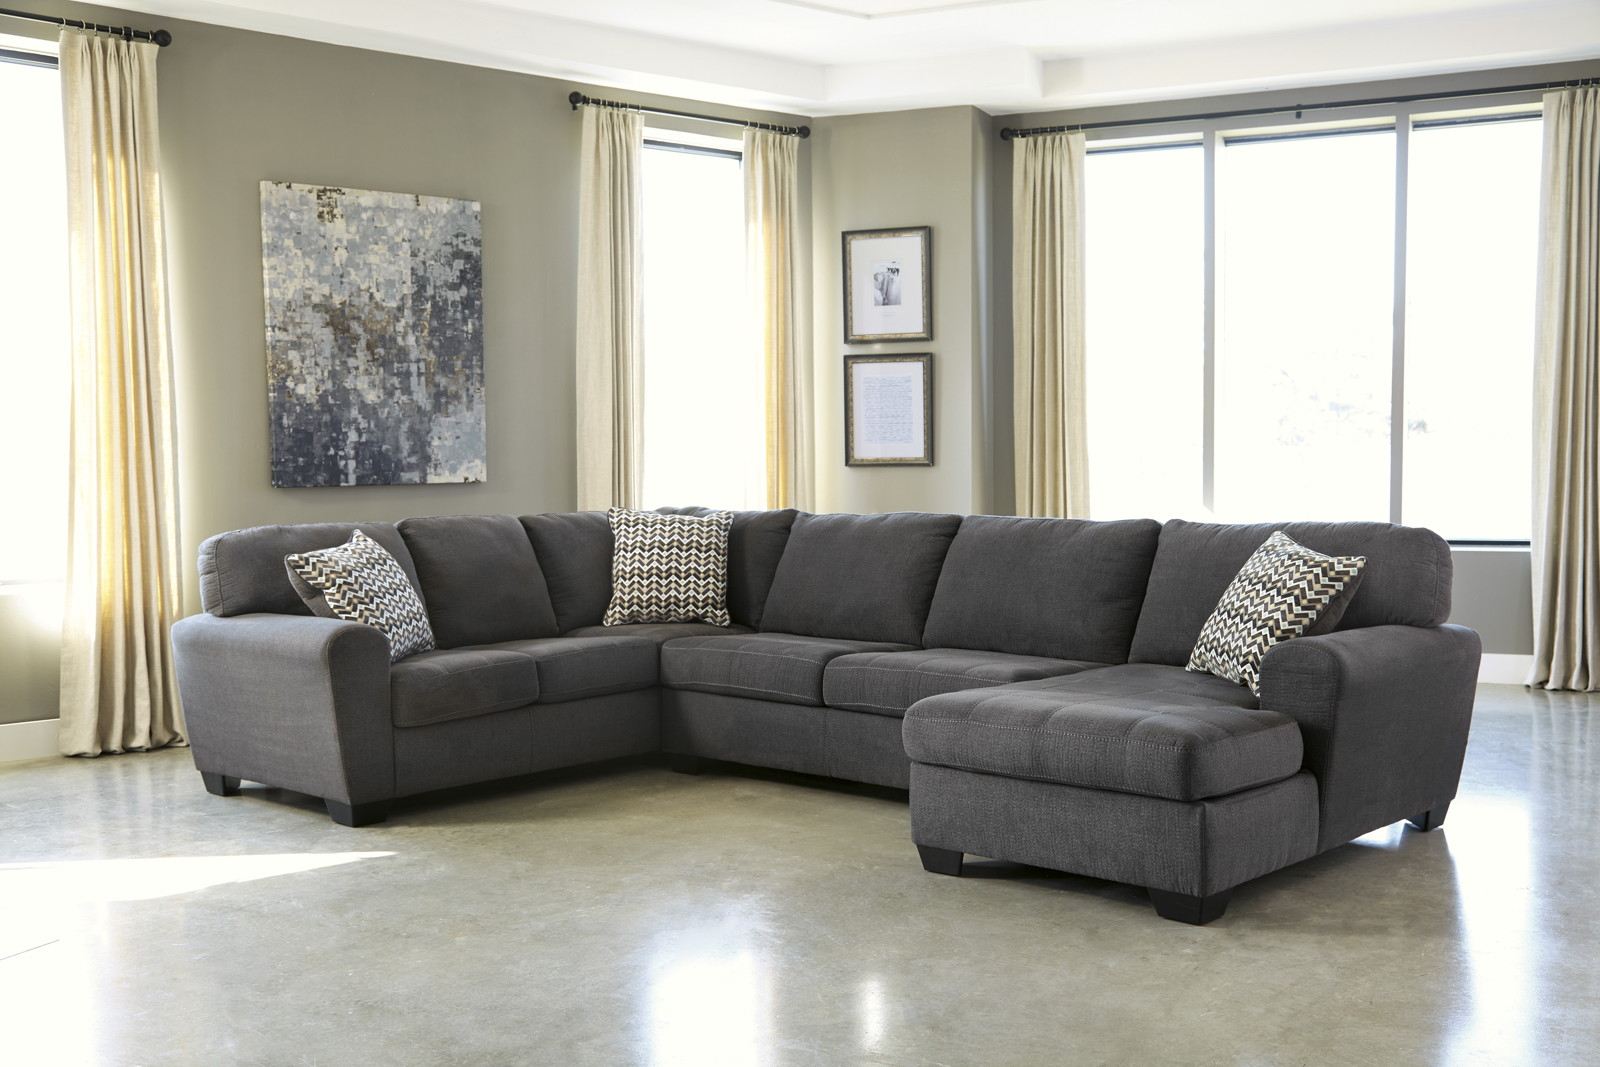 liberty 2 piece sofa and motion loveseat group in grey nixon sorenton laf chaise sectional slate